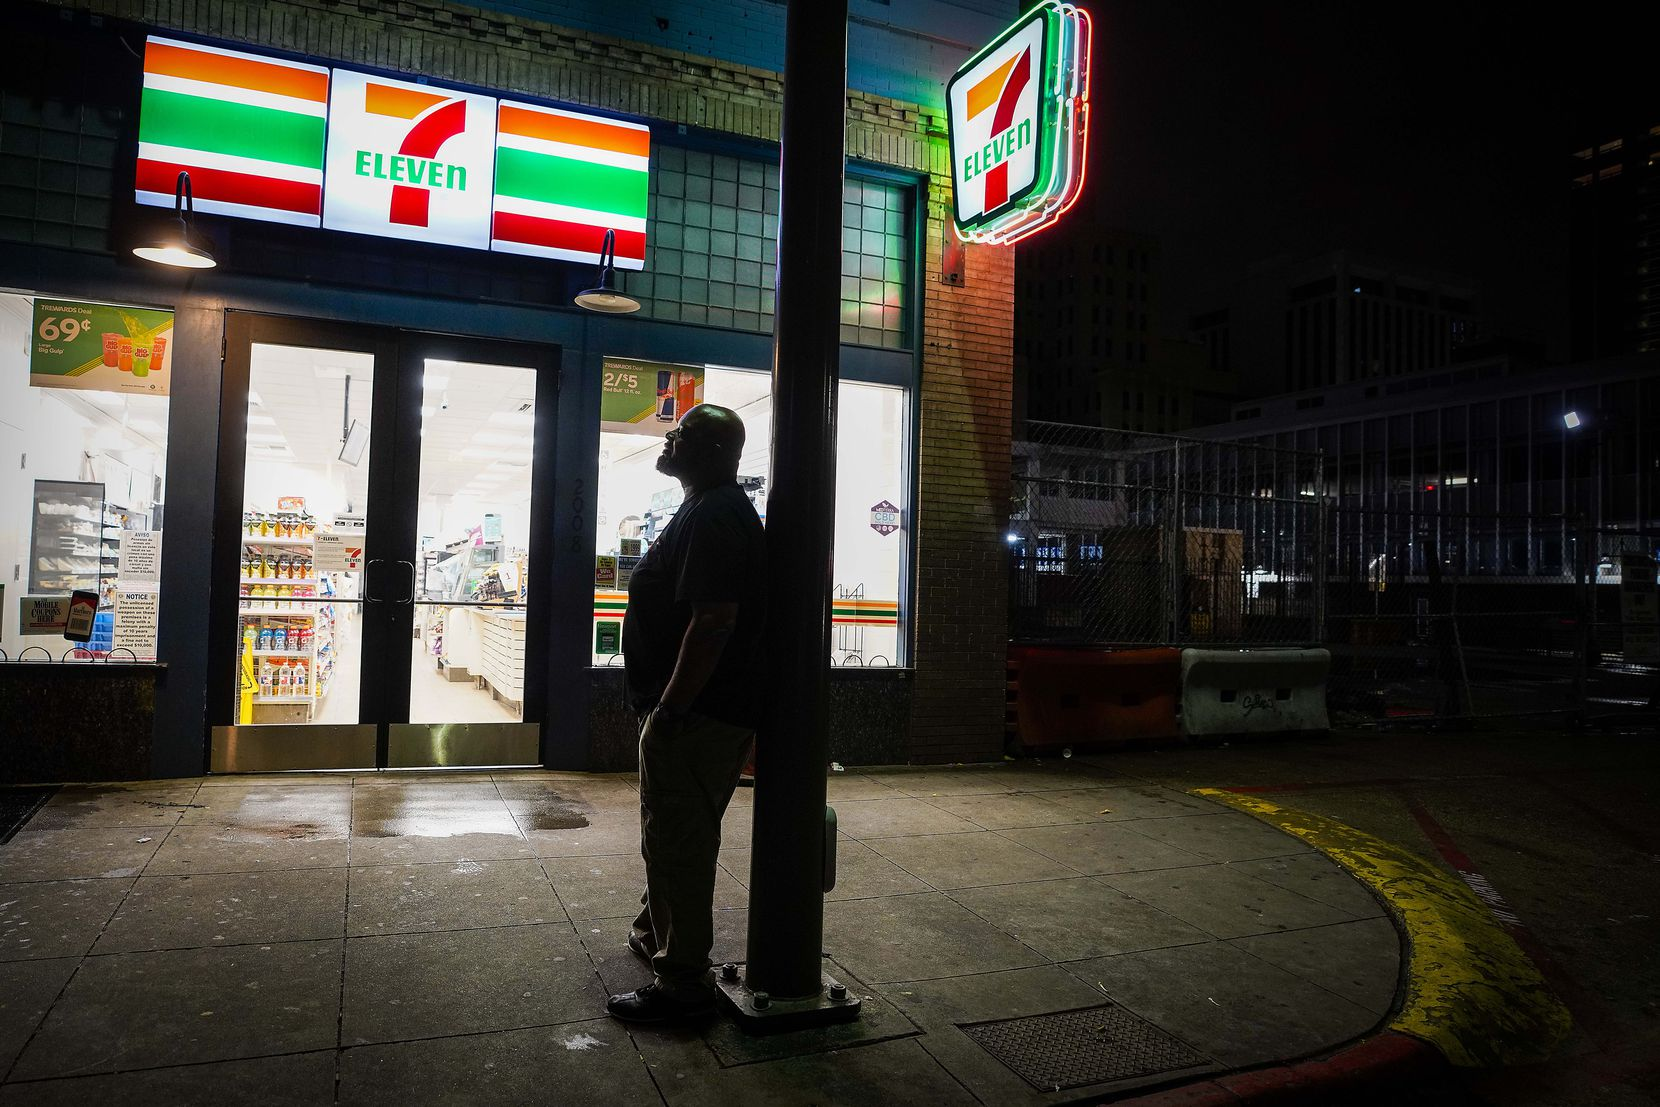 Mark Anthony Jenkins looks out over the completely empty Commerce Street in front of the 7-Eleven store where he works in downtown Dallas at around 12:45 a.m. on Tuesday, March 24, 2020.